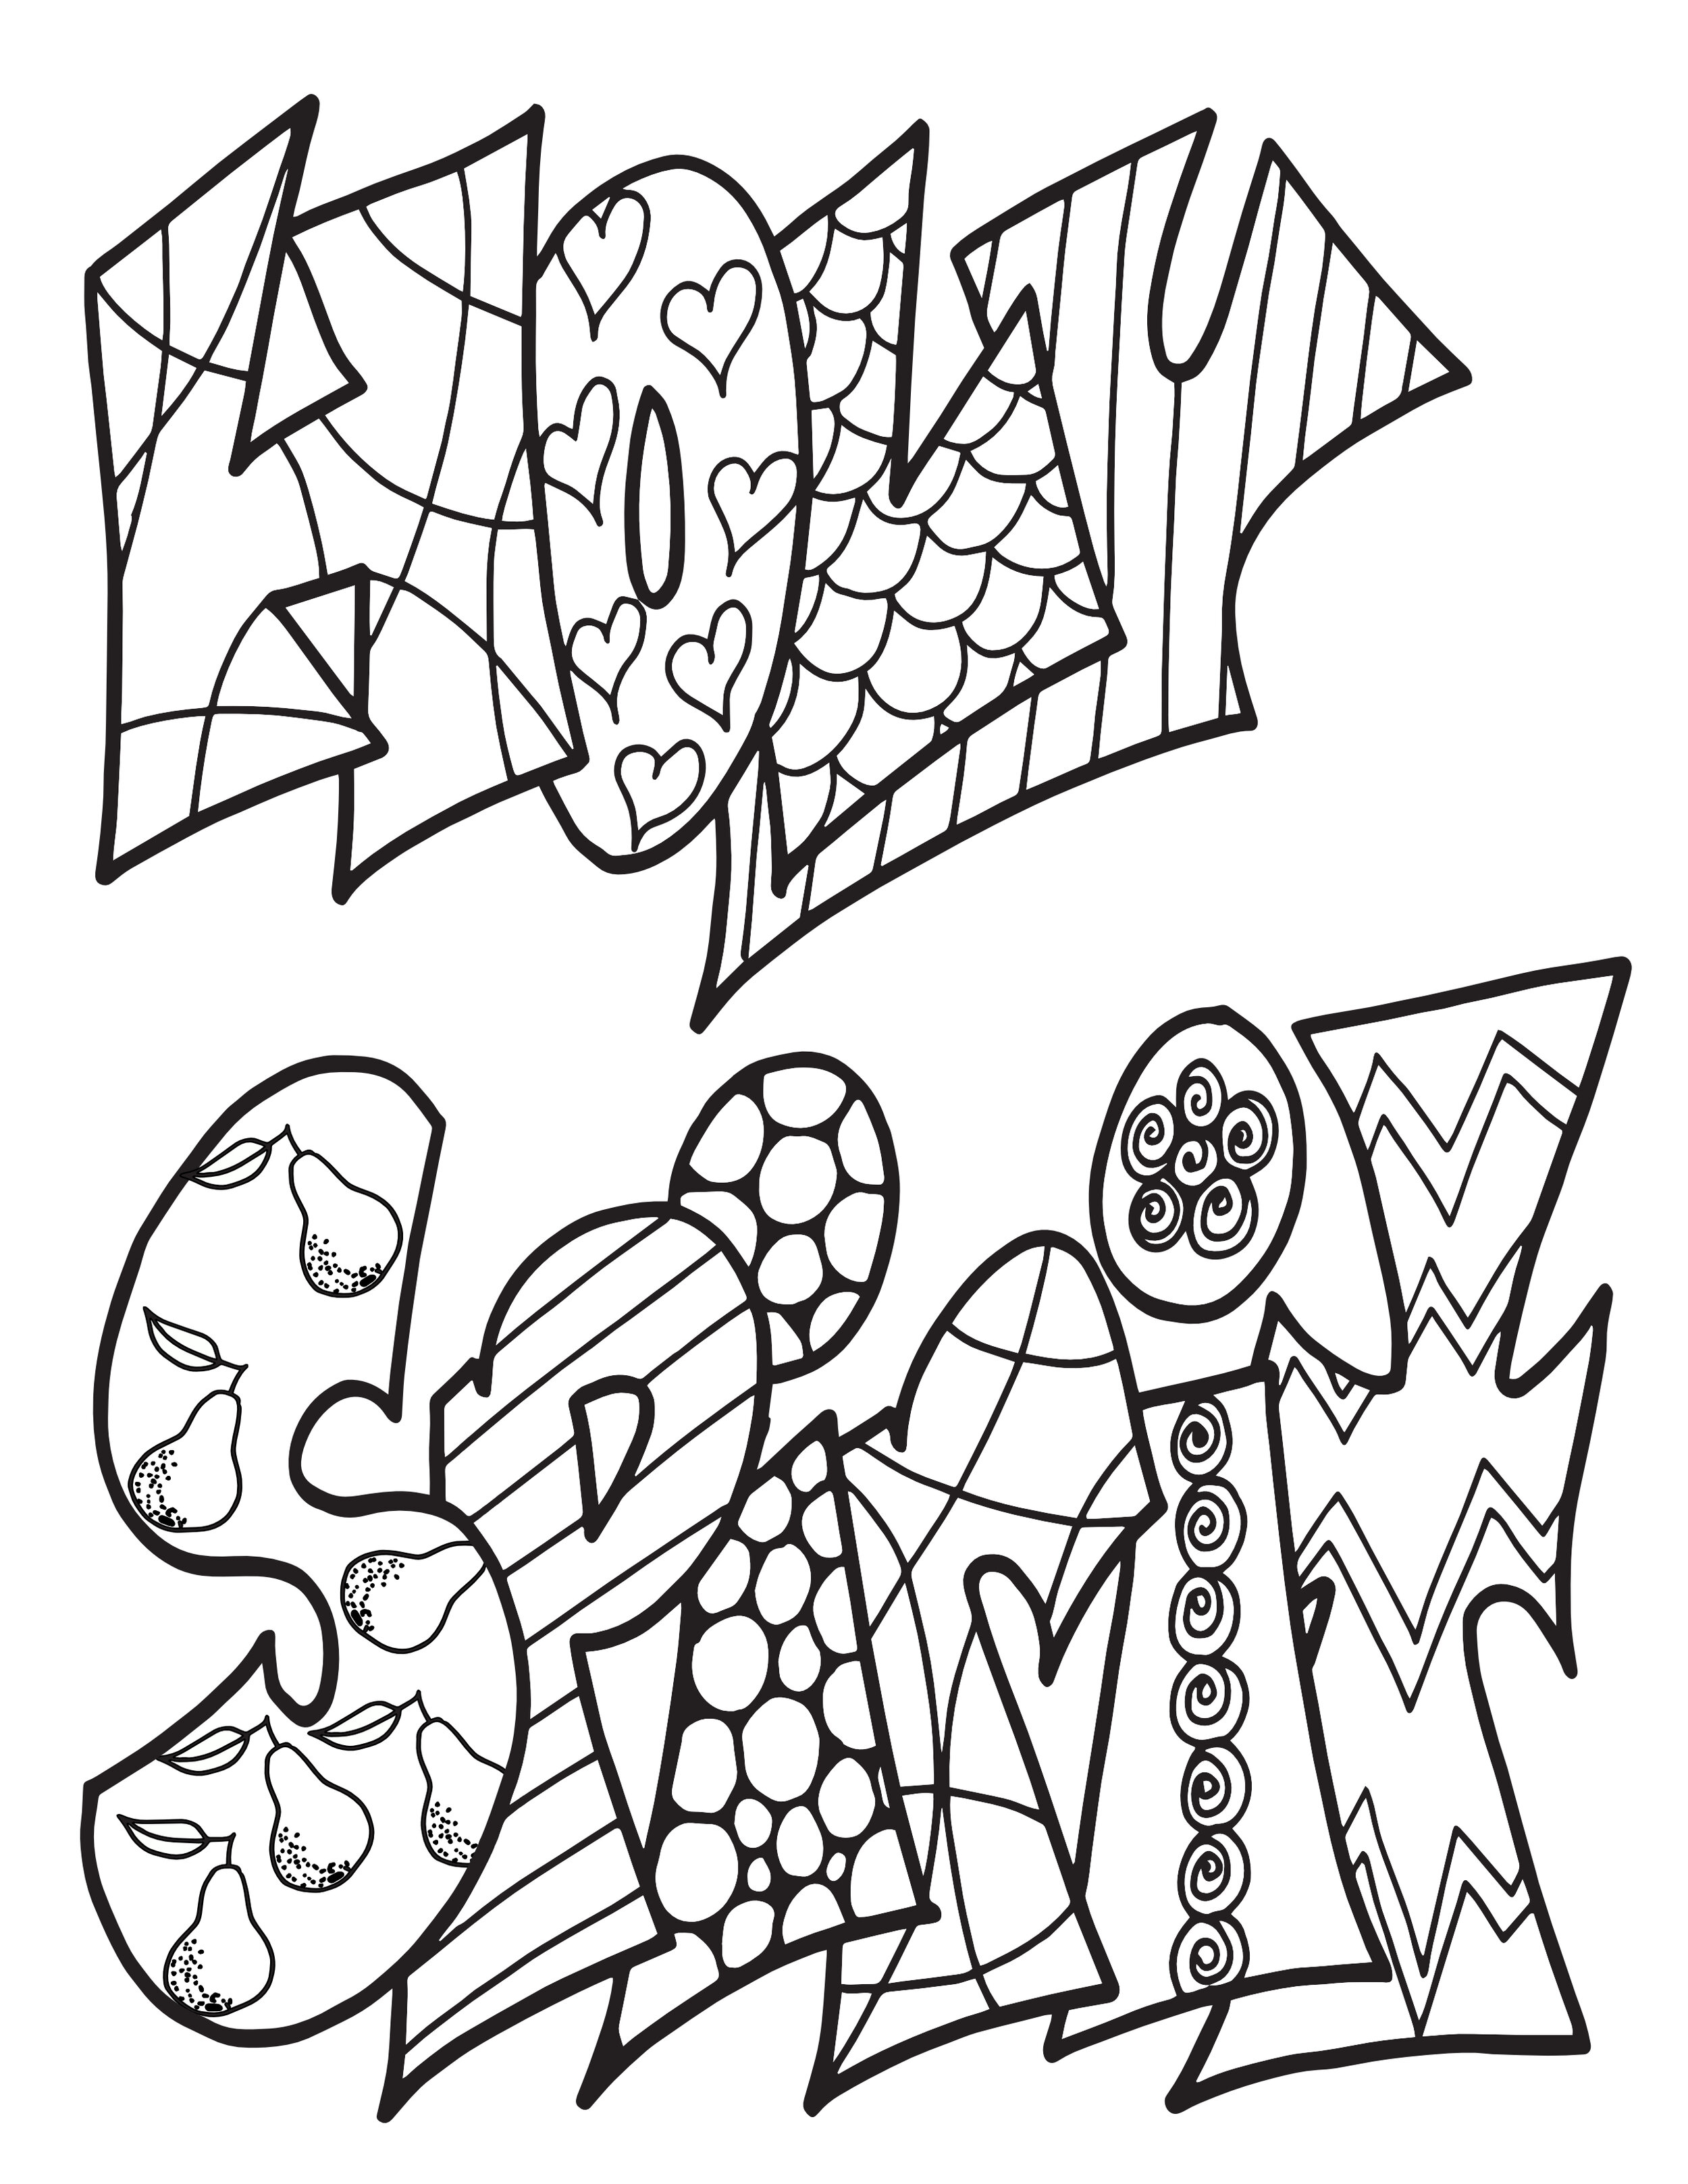 Holy Spirit Classic Doodle Free Coloring Page Stevie Doodles Free Printable Coloring Pages